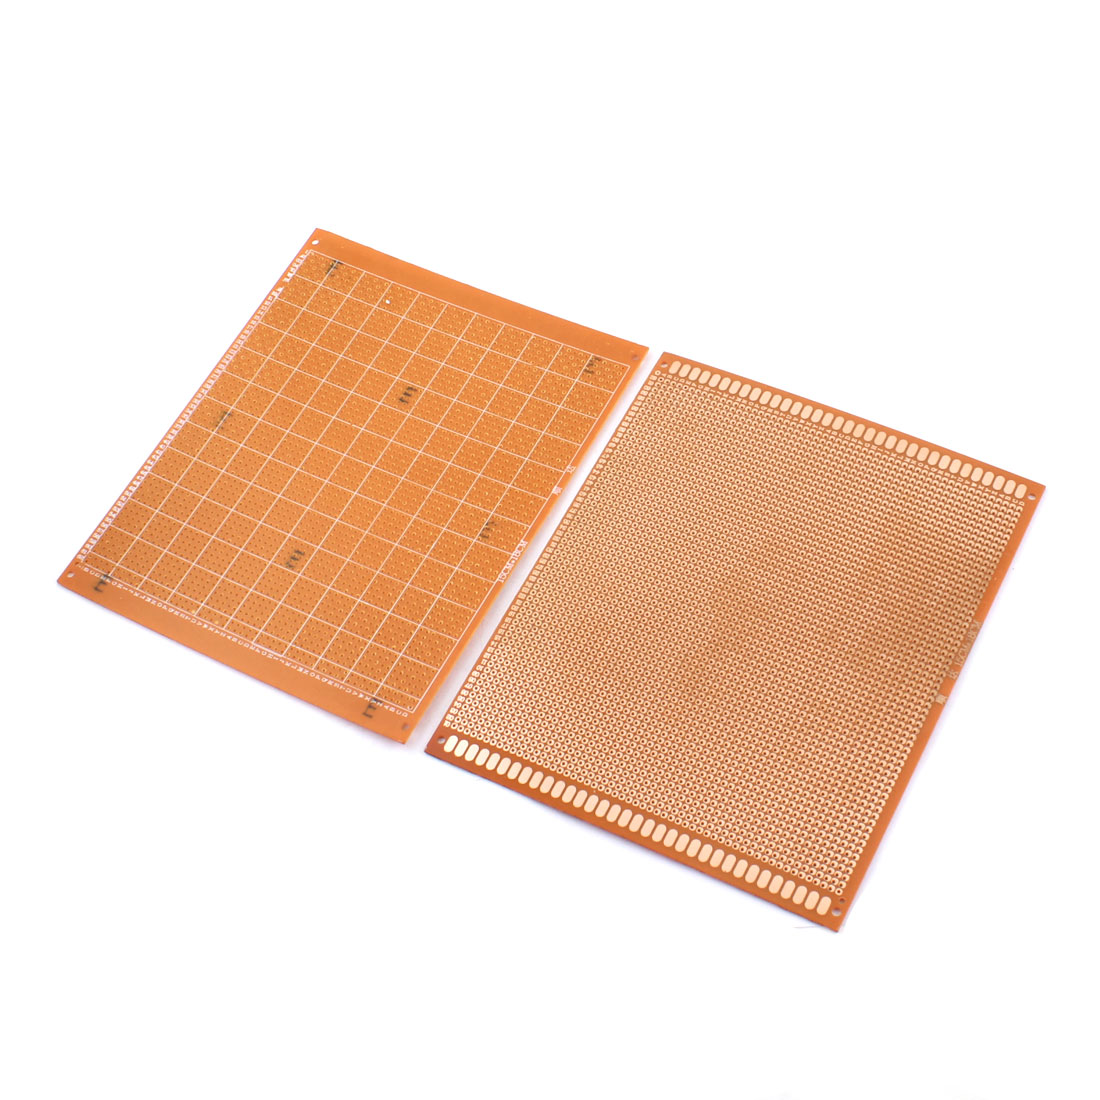 15cm x 18cm One Side Prototype PCB Circuit Board Universal Stripboard 2.54mm Pitch 2Pcs